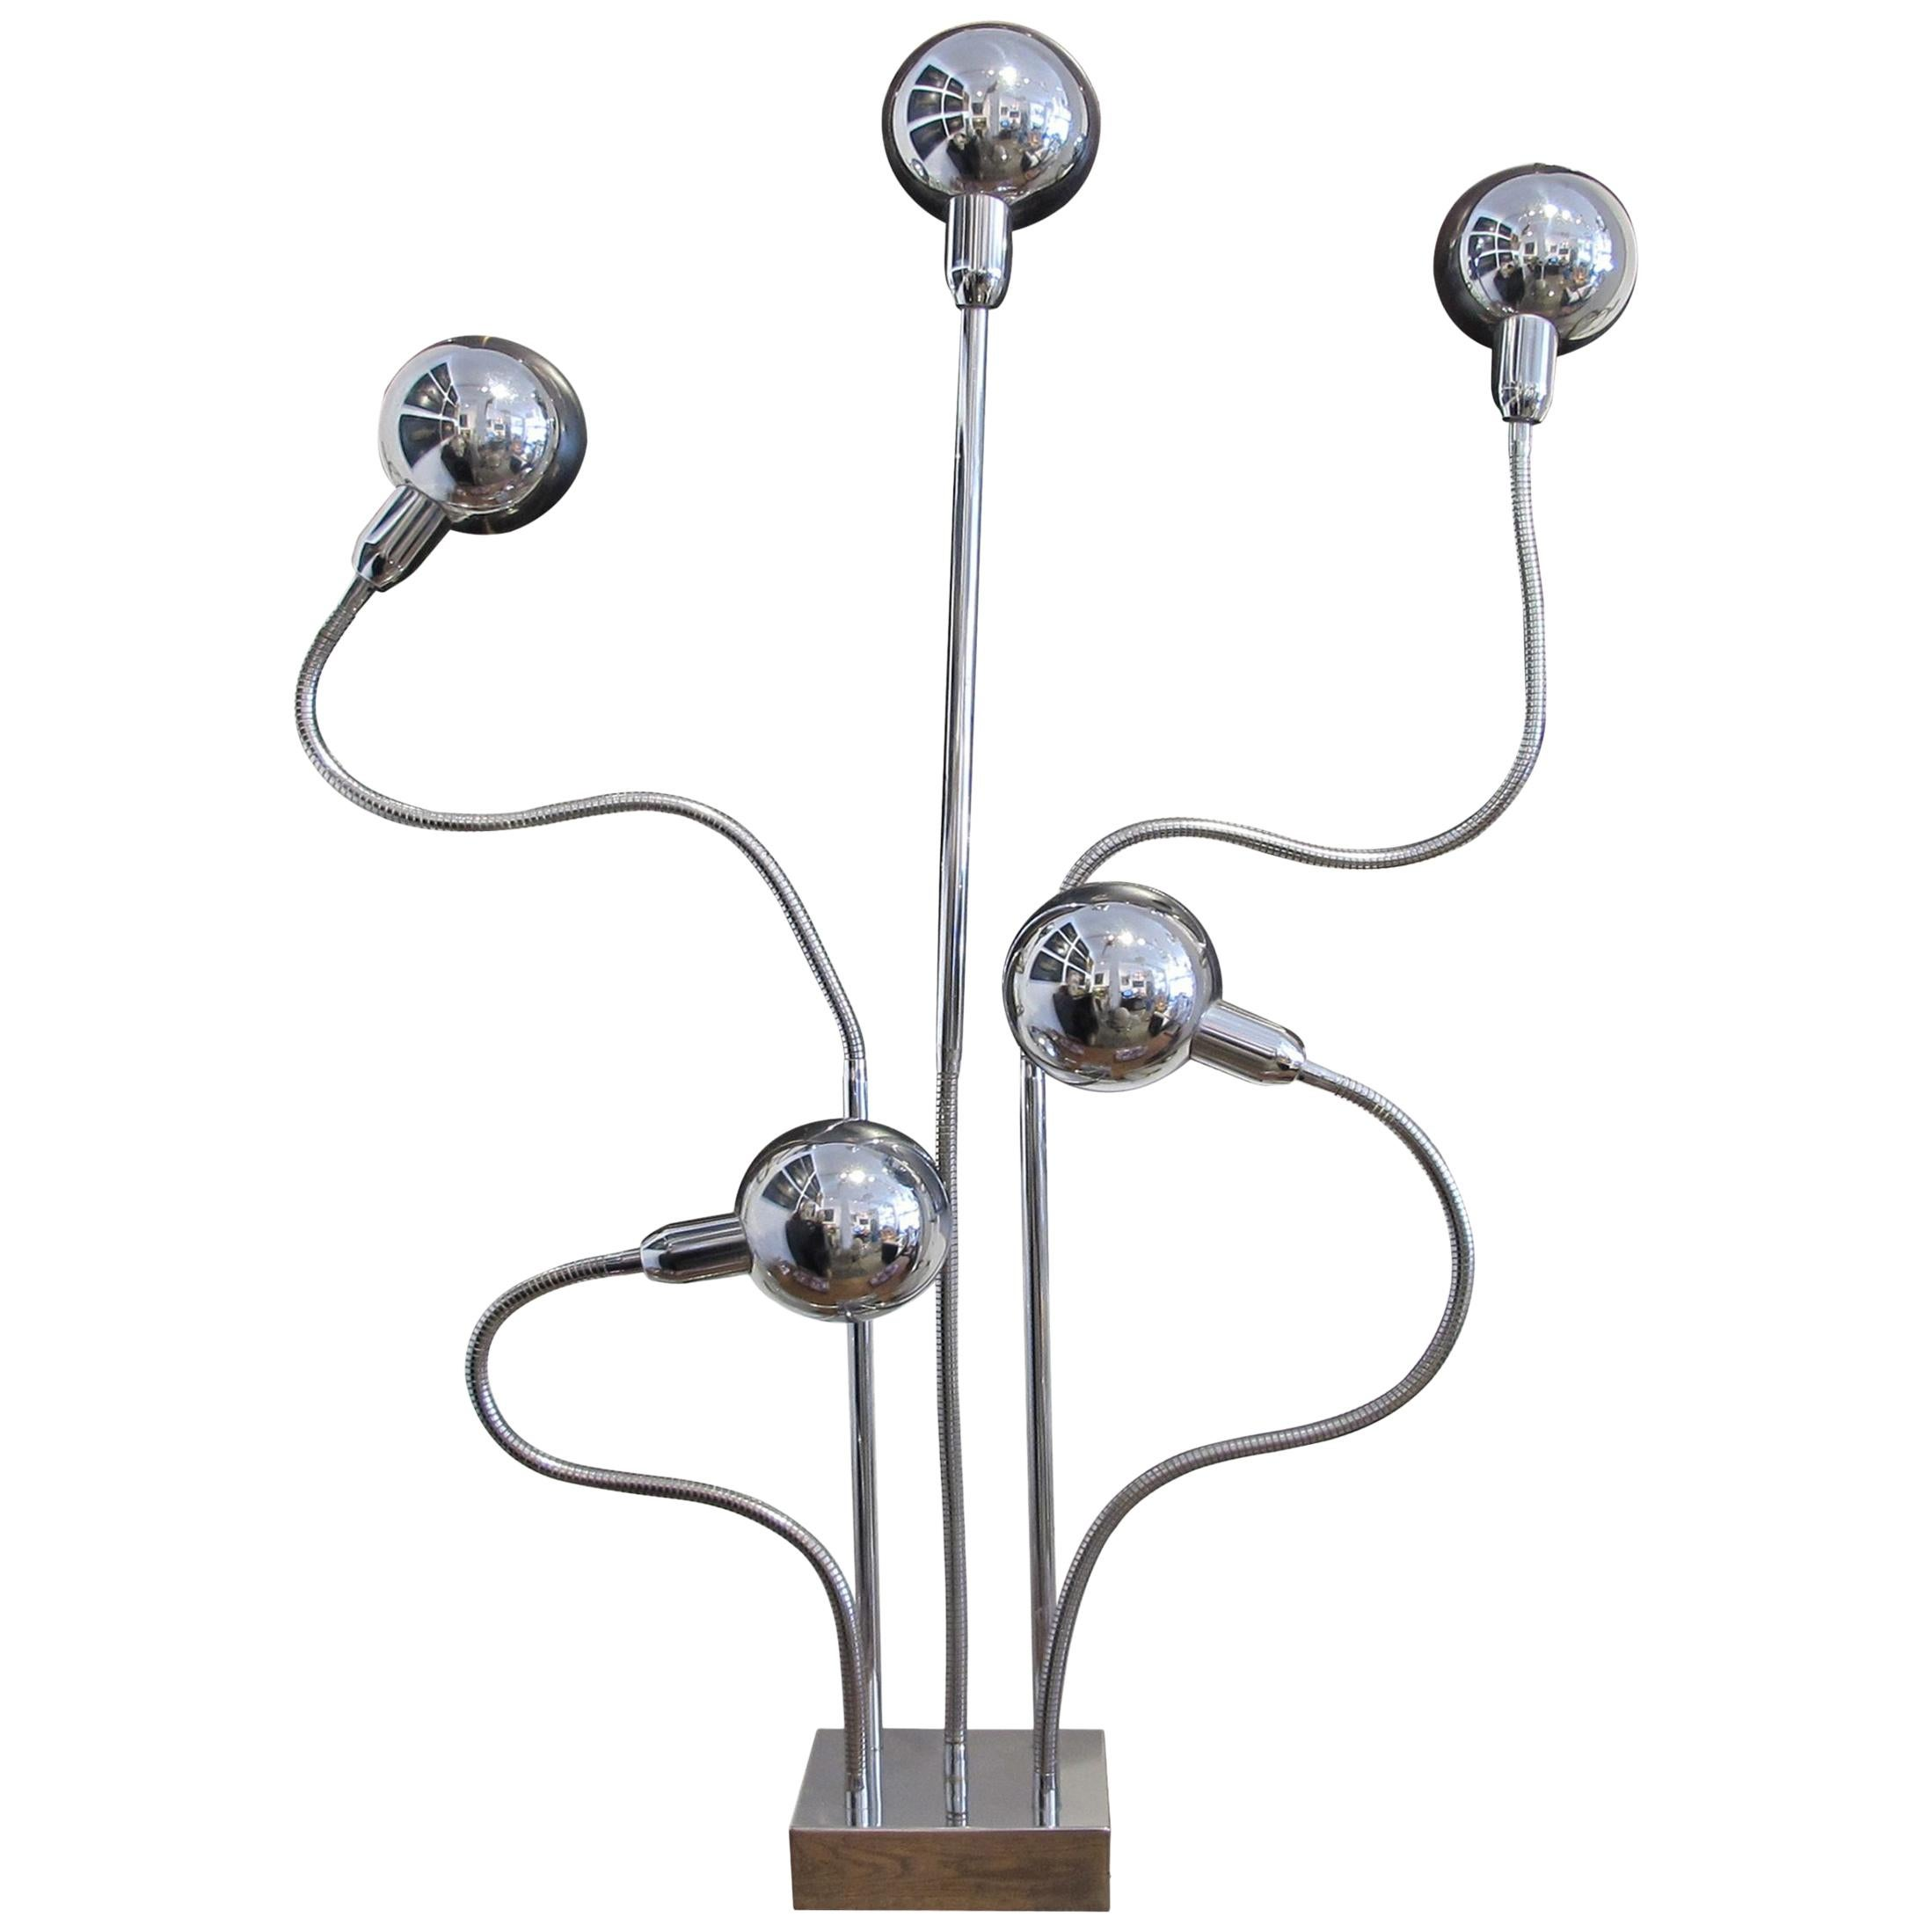 1960s French Chrome Floor 'Hydra' Lamp by Pierre Folie for Jacques Charpentier